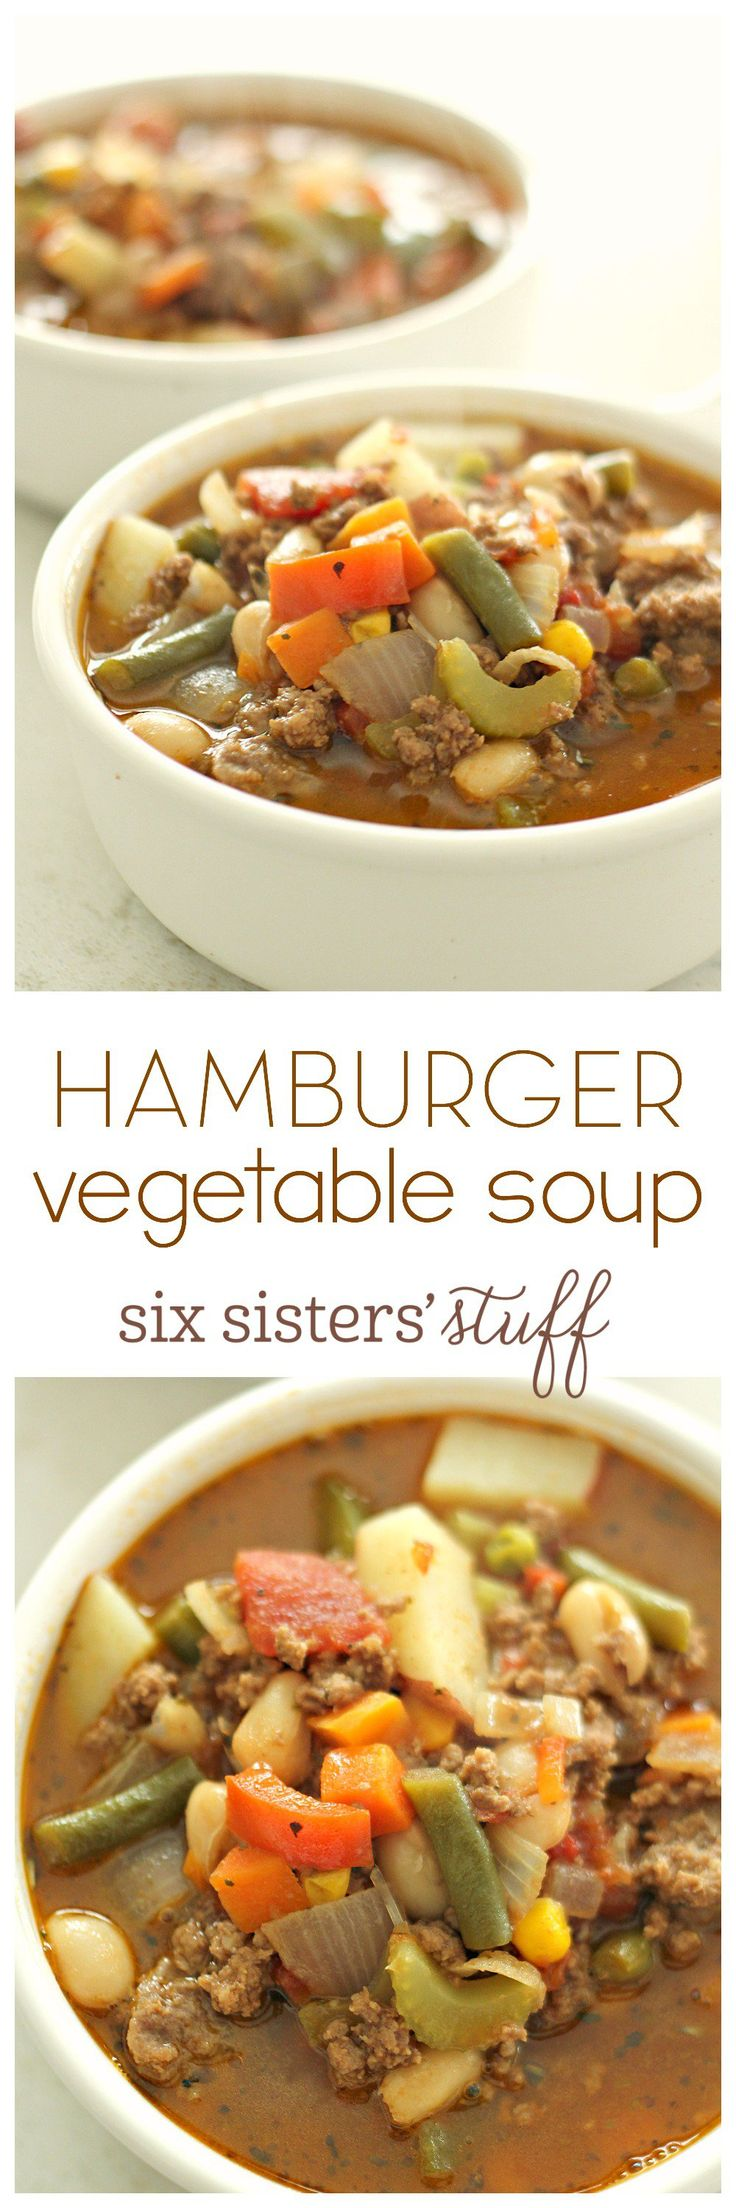 Hamburger Vegetable Soup from SixSistersStuff.com - easy and healthy!